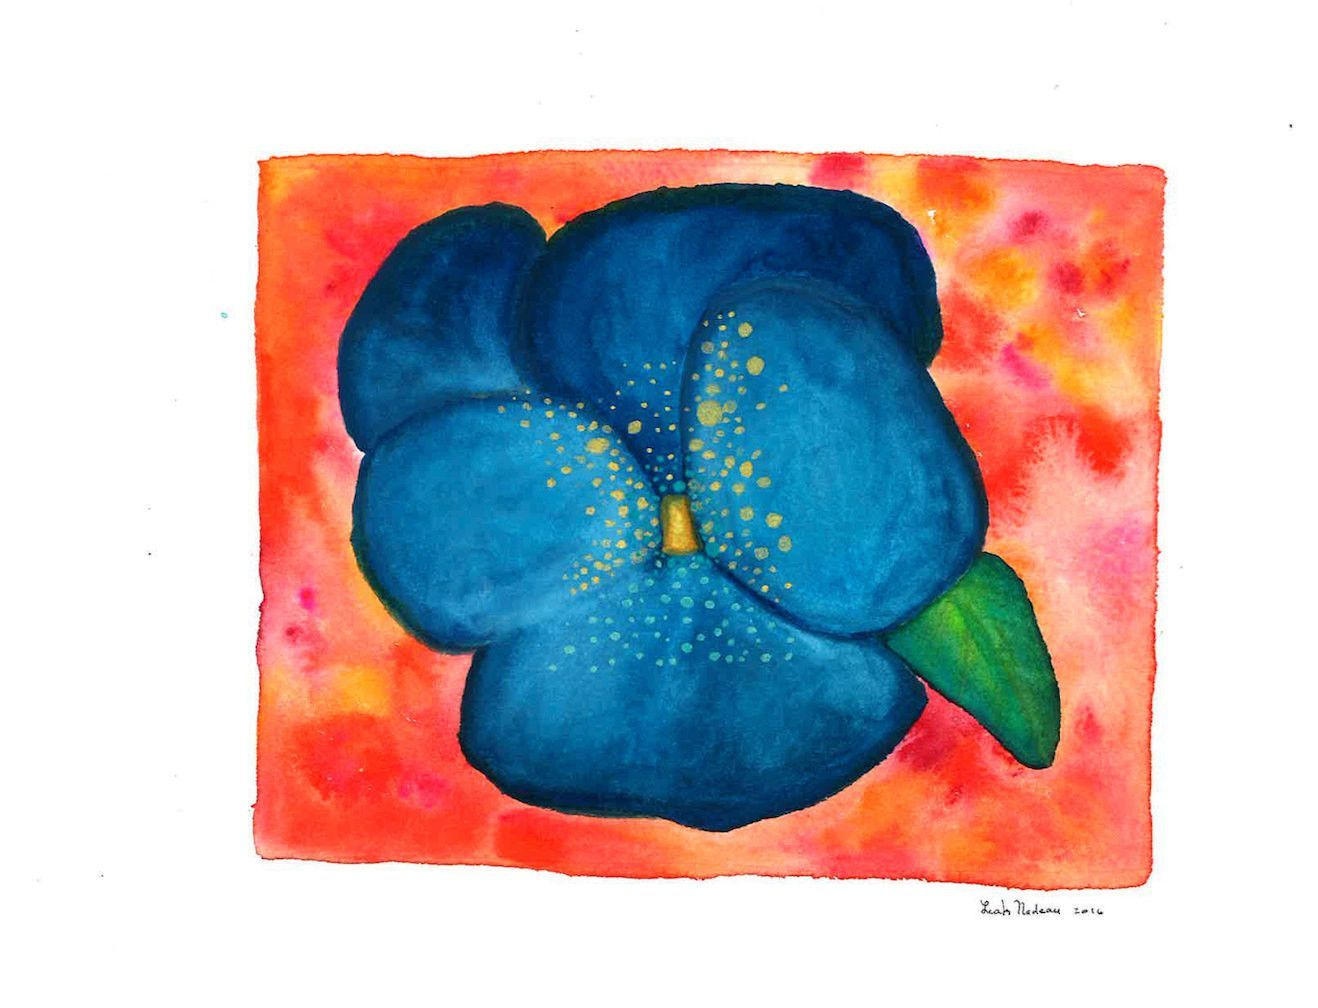 Electric Blue Flower-Original Watercolor Painting